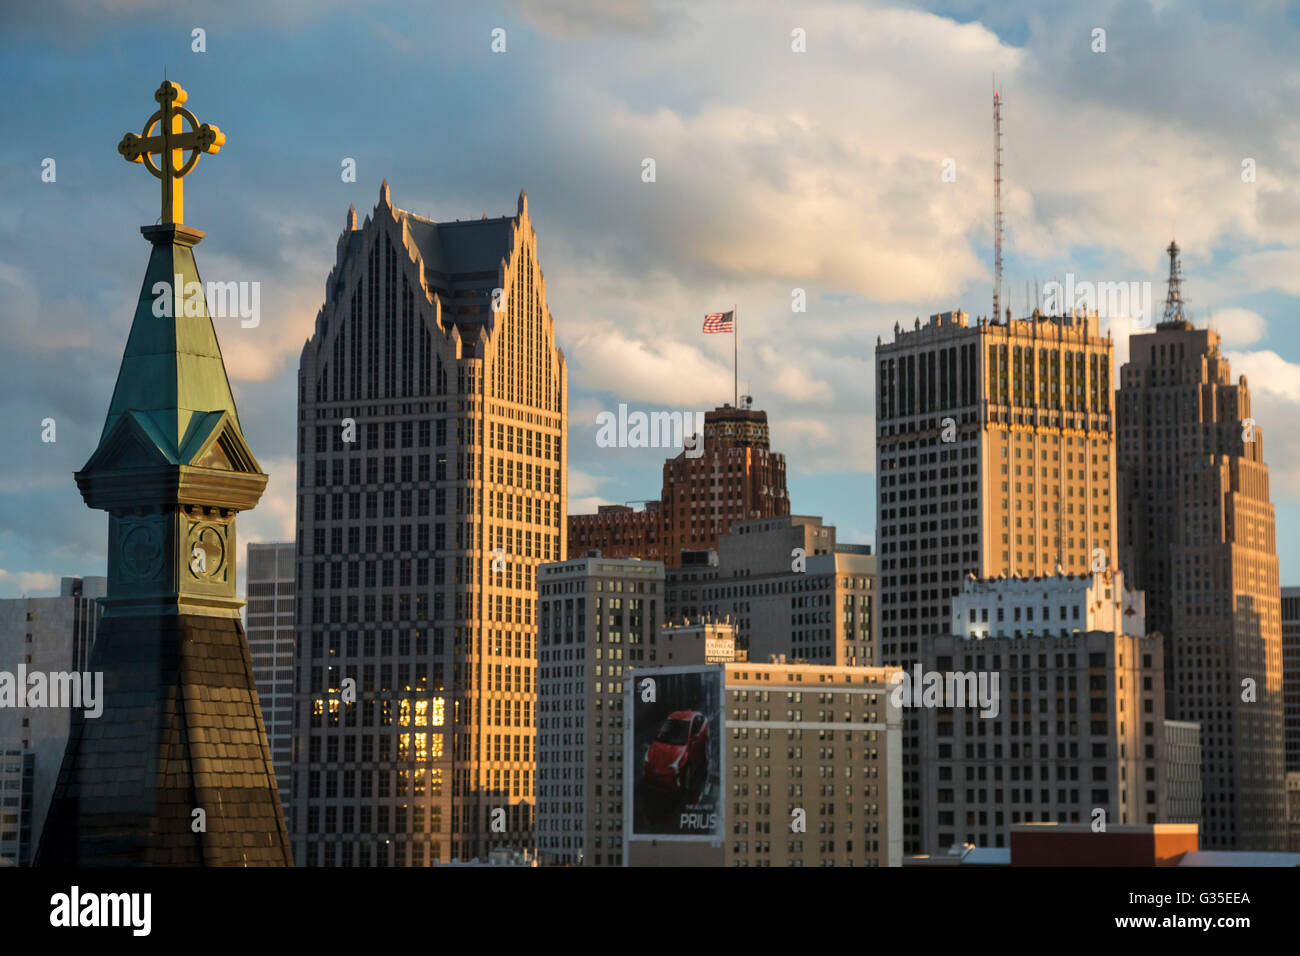 Detroit, Michigan - Downtown Detroit. The steeple of Old St. Mary's Catholic Church is on the foreground, left. - Stock Image